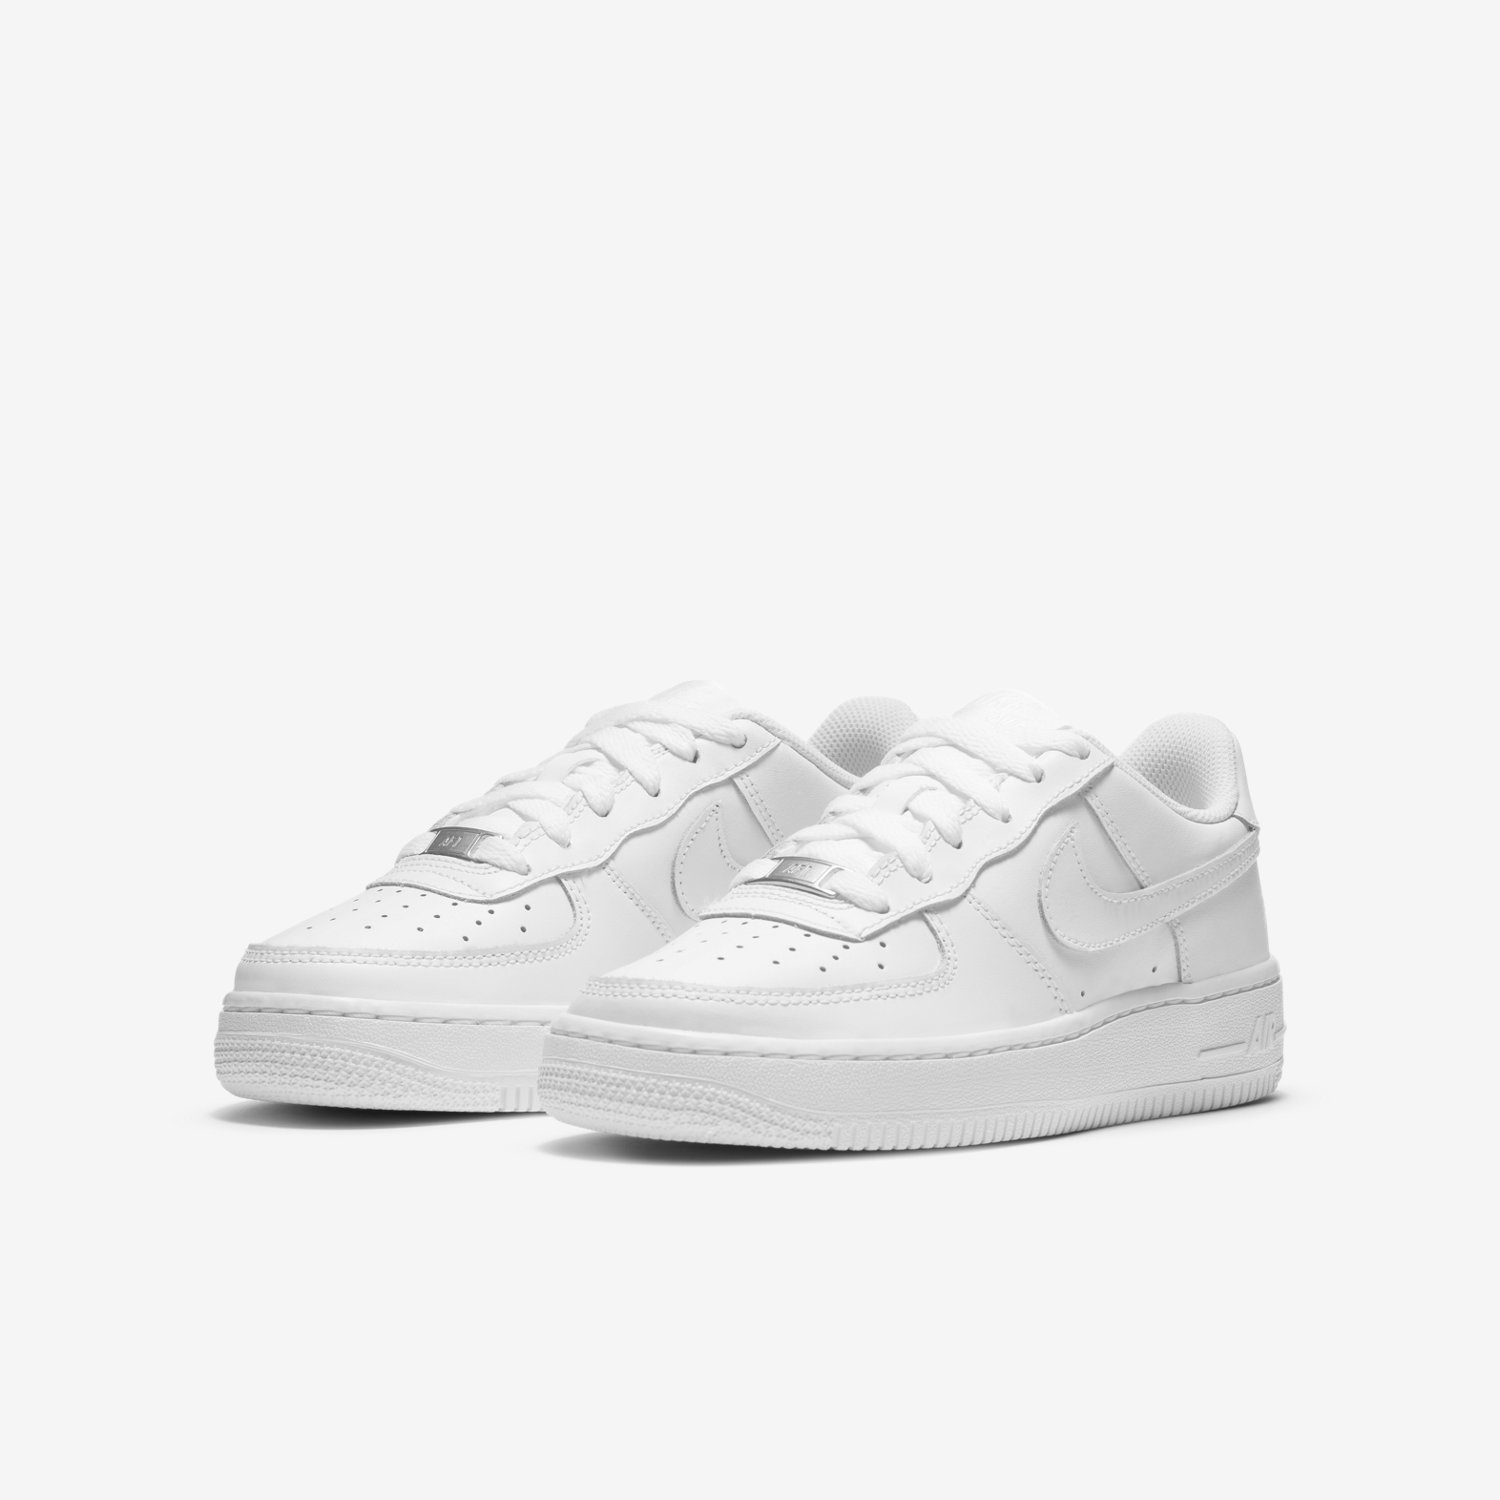 36. Air Force 1 Low